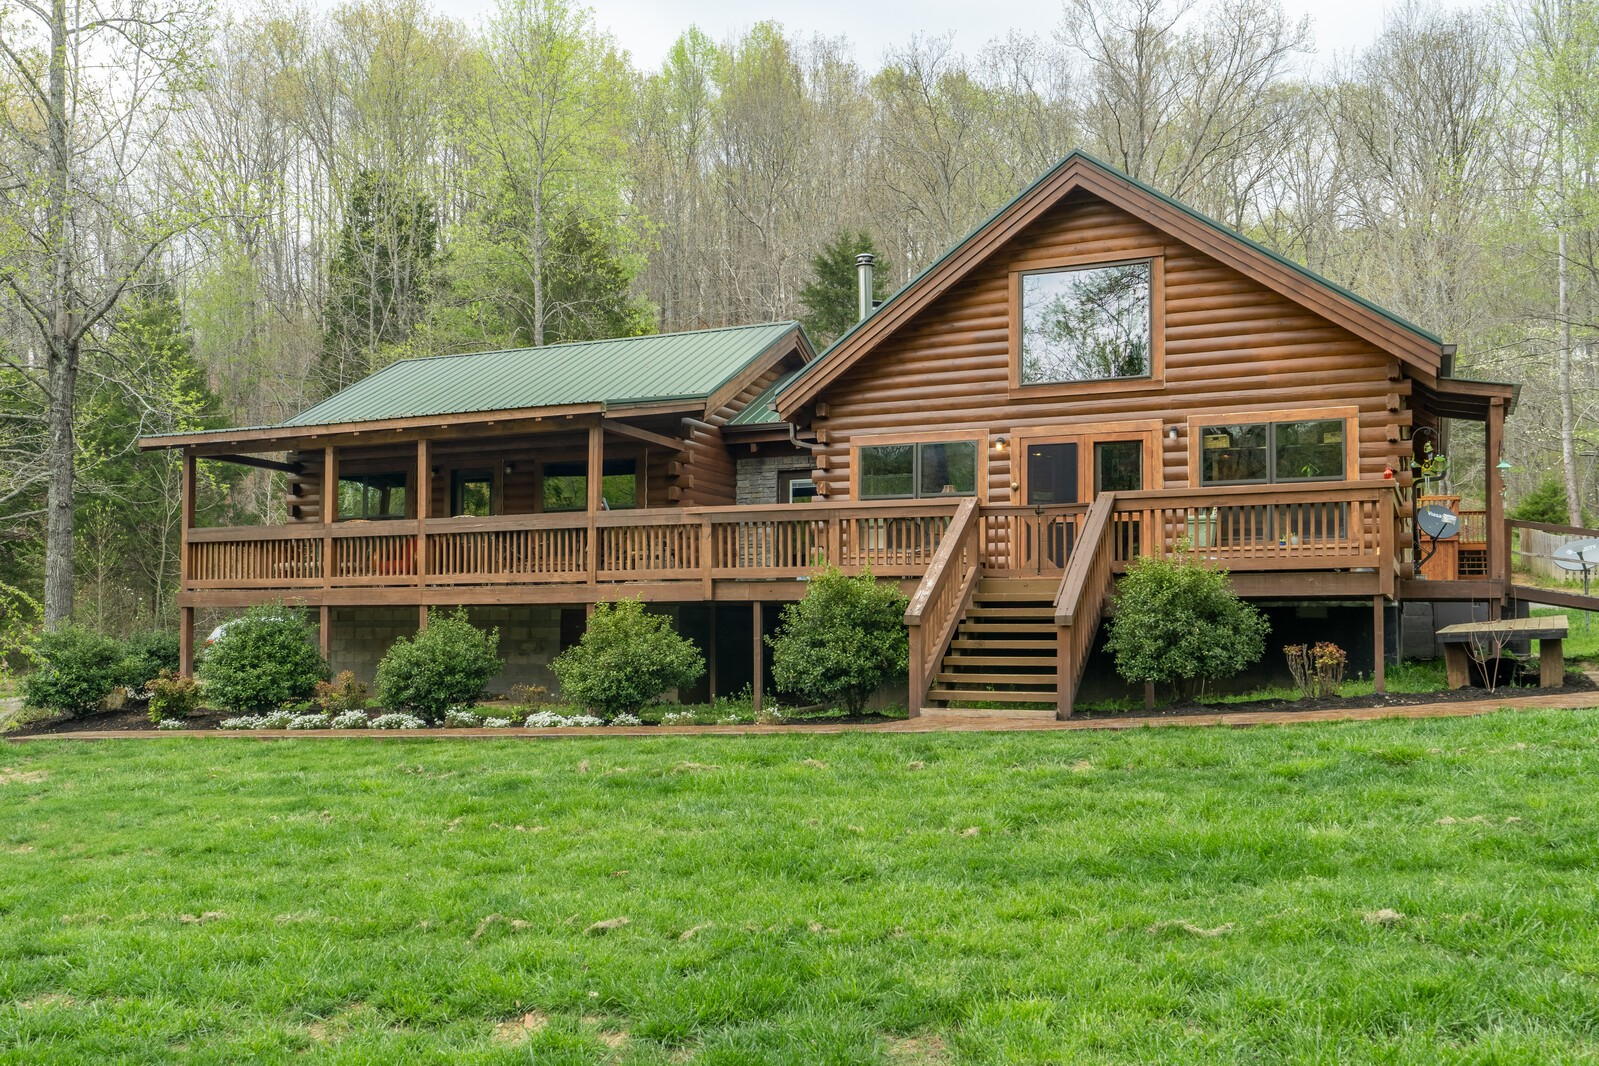 Photo of 3527 Browns Lake Rd, Goodlettsville, TN 37072